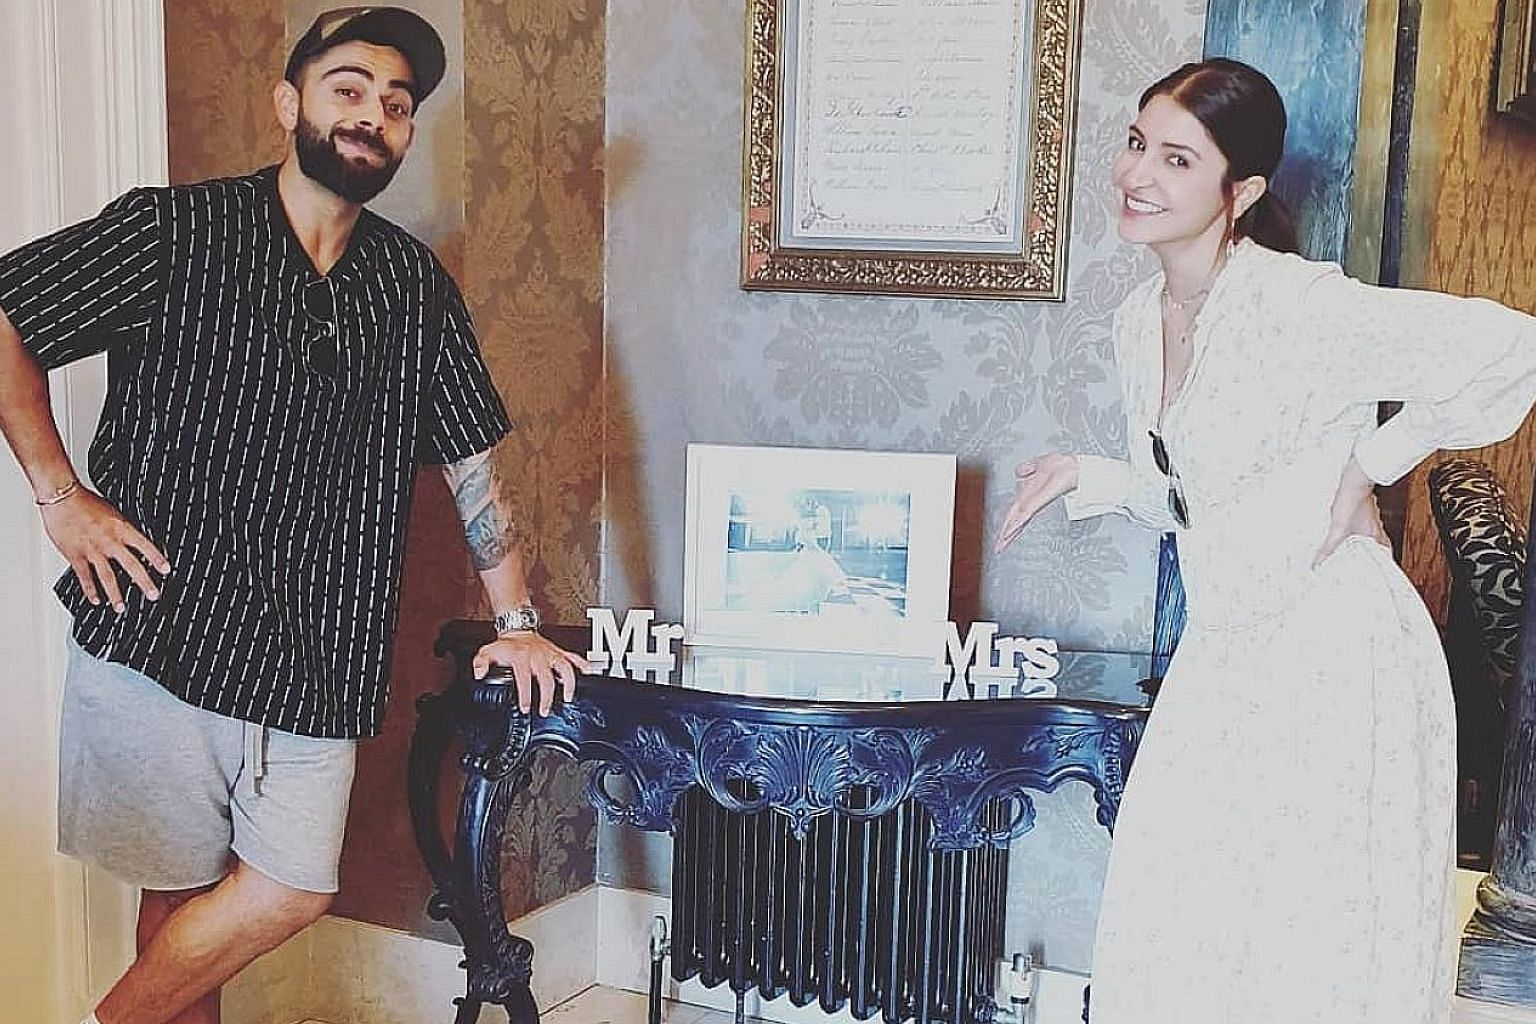 "SWEET TWEET ""Mr and Mrs."" Indian skipper Virat Kohli enjoying a day off with his wife, actress Anushka Sharma, ahead of India's Cricket World Cup clash with Sri Lanka yesterday. HOT SHOT ""Another exciting day of tennis ahead."" Not a doubles pair you'"